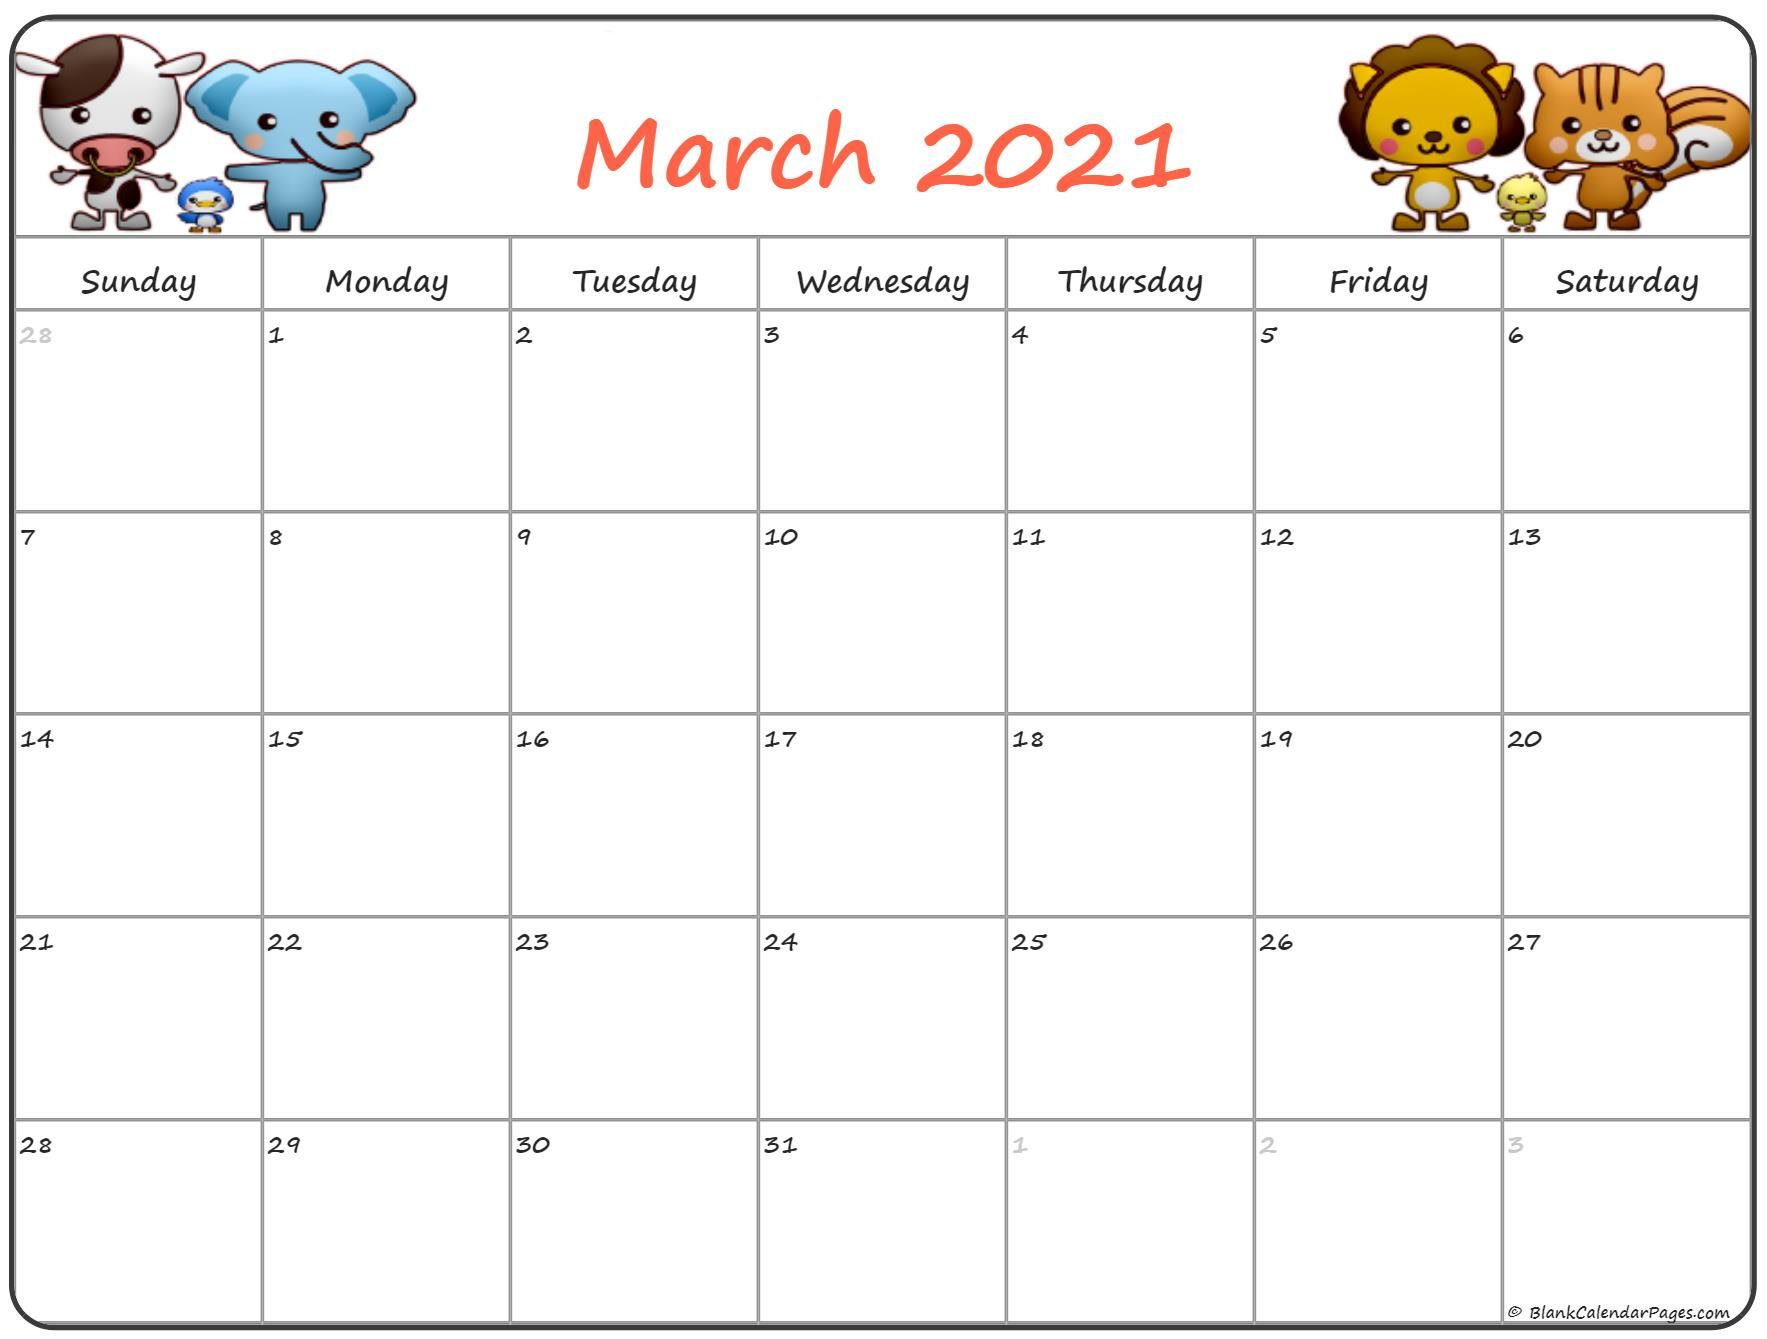 March 2021 Calendar Cute Cute March 2021 Calendar in 2020 | Kids calendar, Calendar